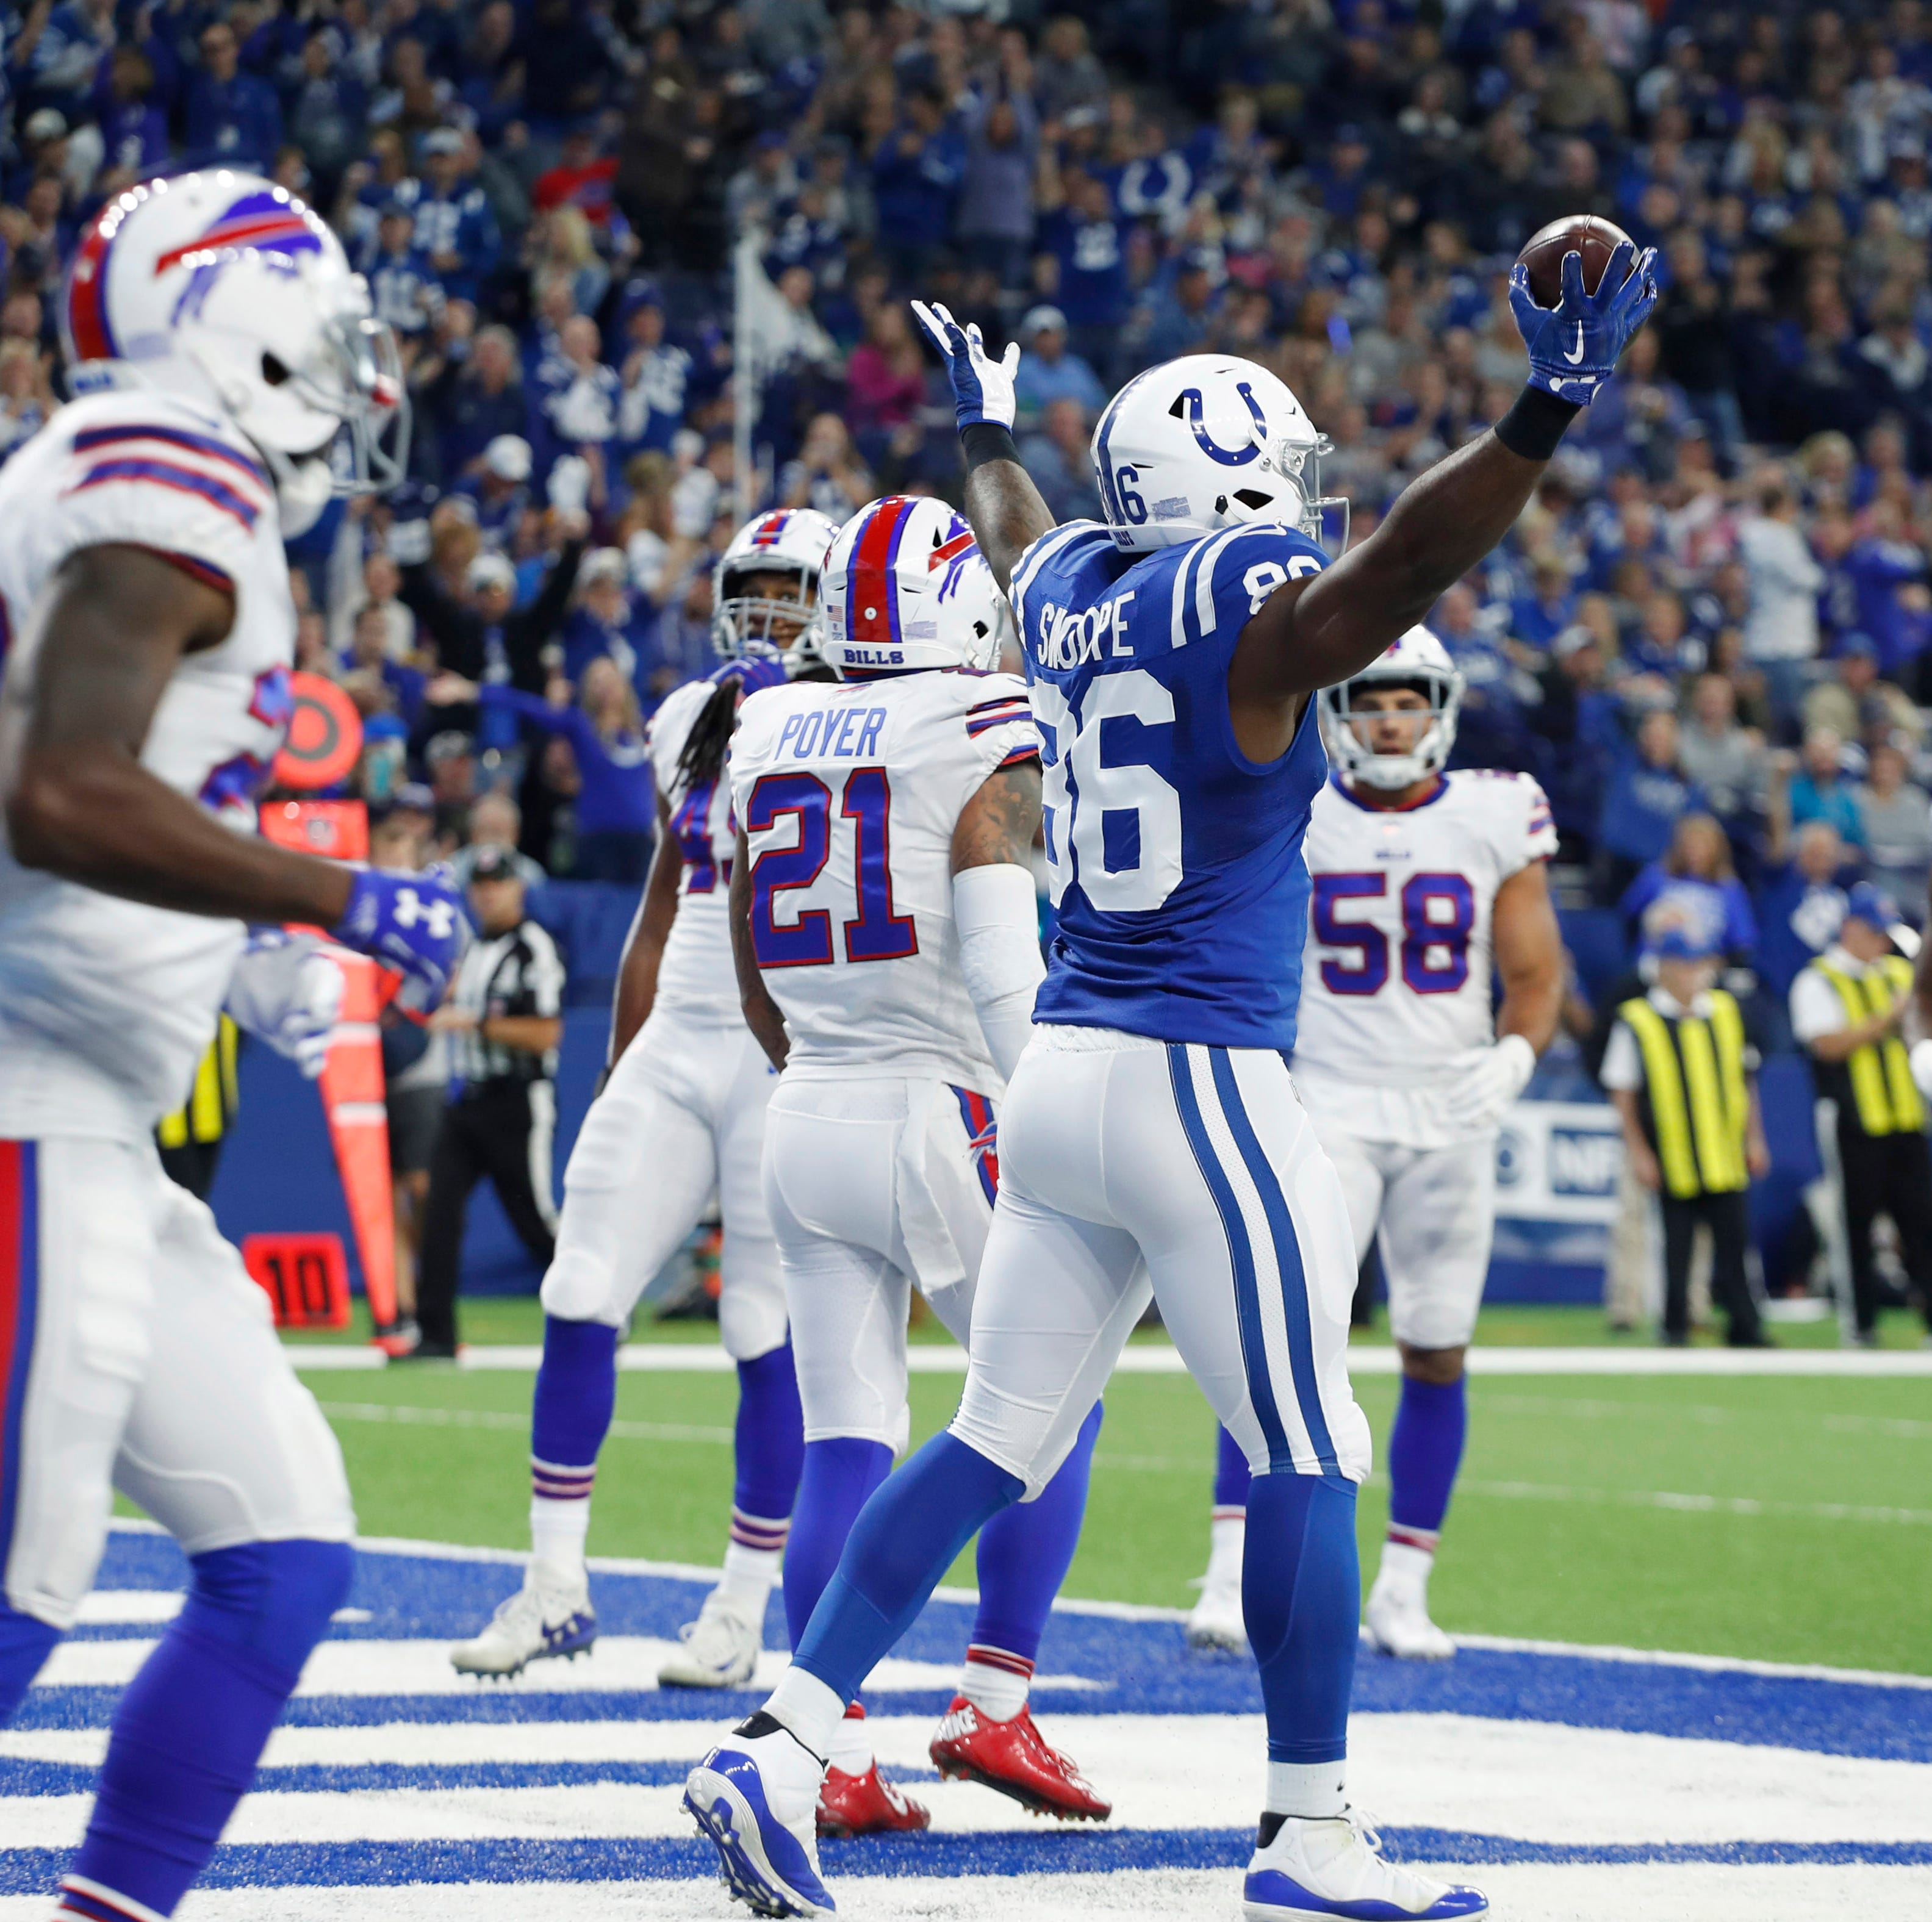 Buffalo Bills a complete no-show as they get embarrassed by Colts